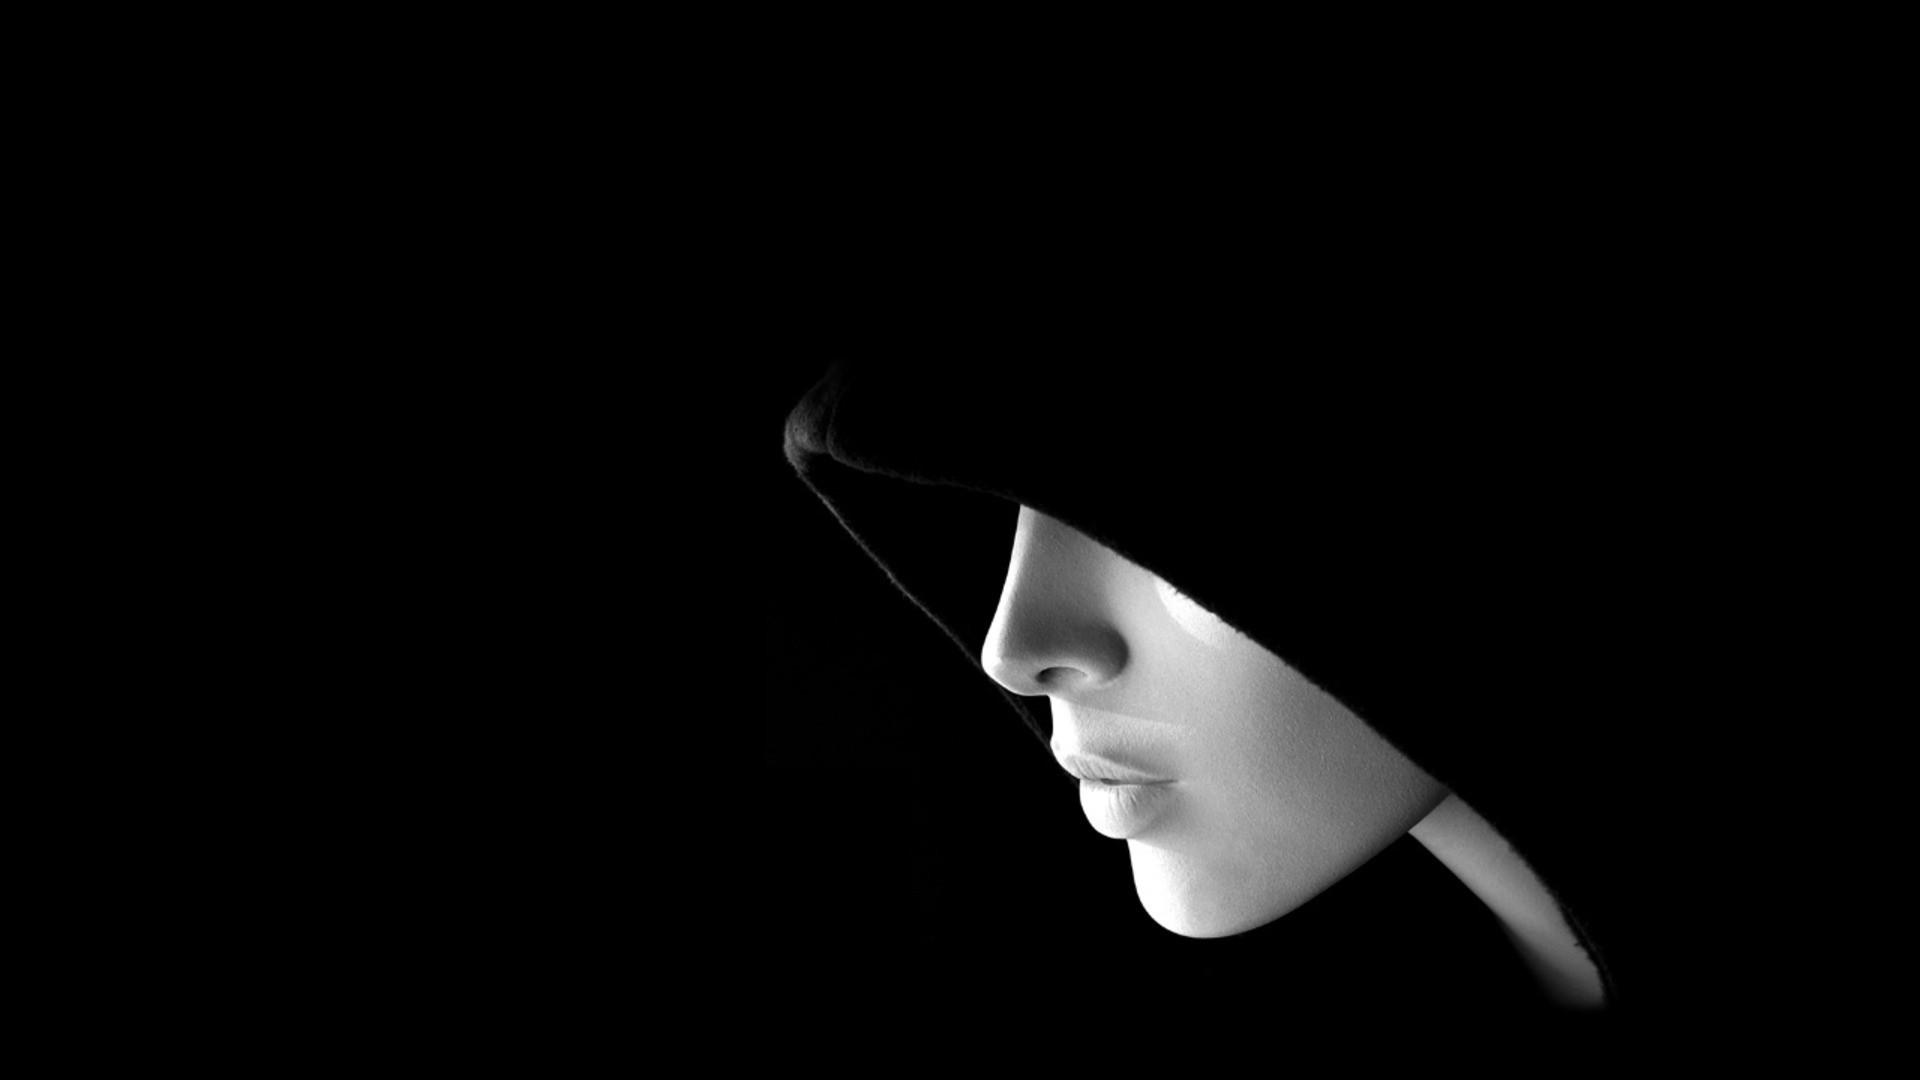 download black background images hd of black and white HD Wallpaper 1920x1080